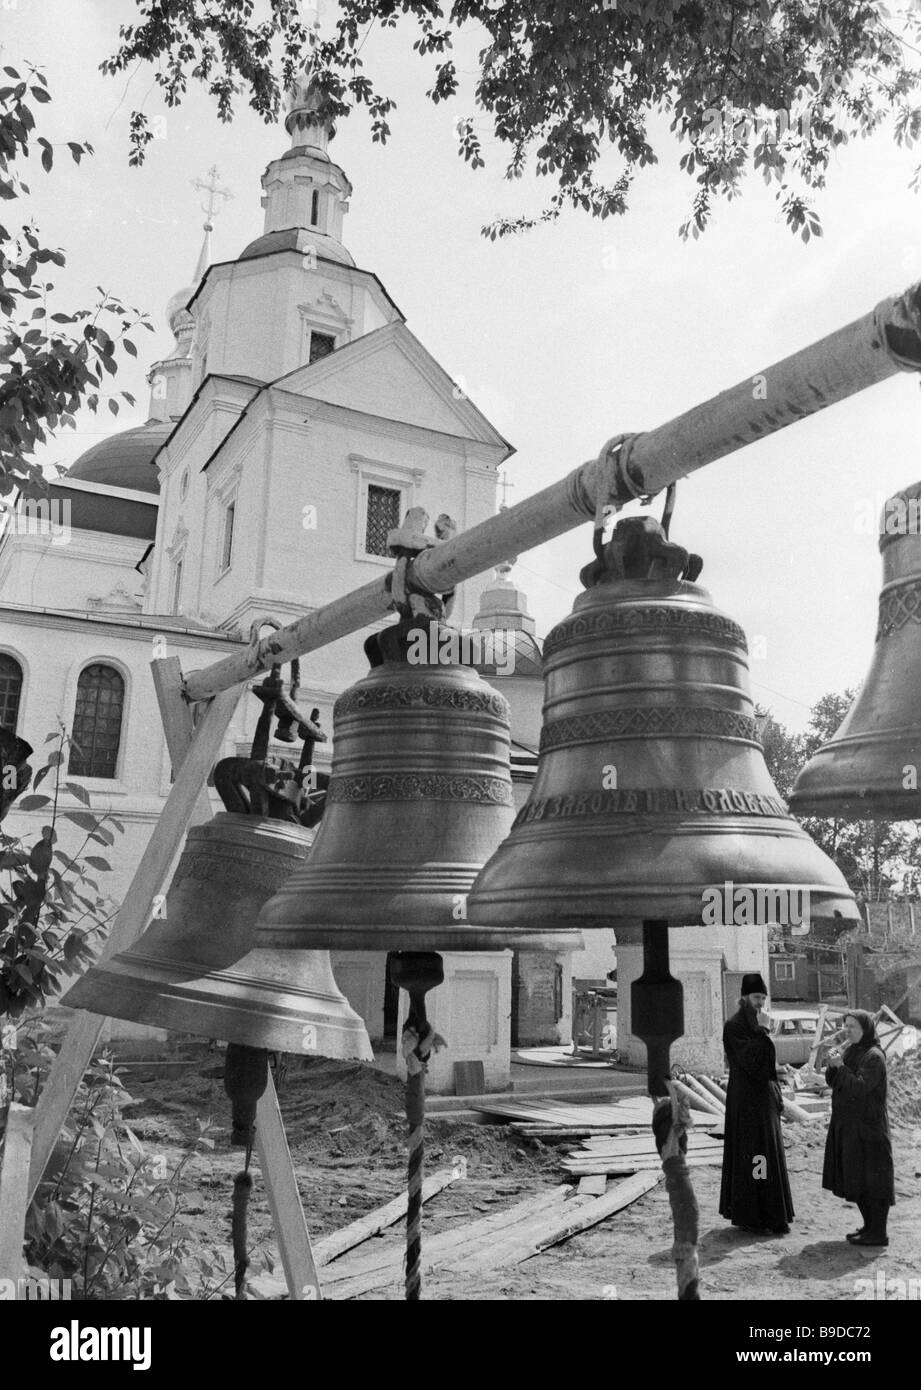 Bells at the Church of the Seven Ecumenical Councils - Stock Image